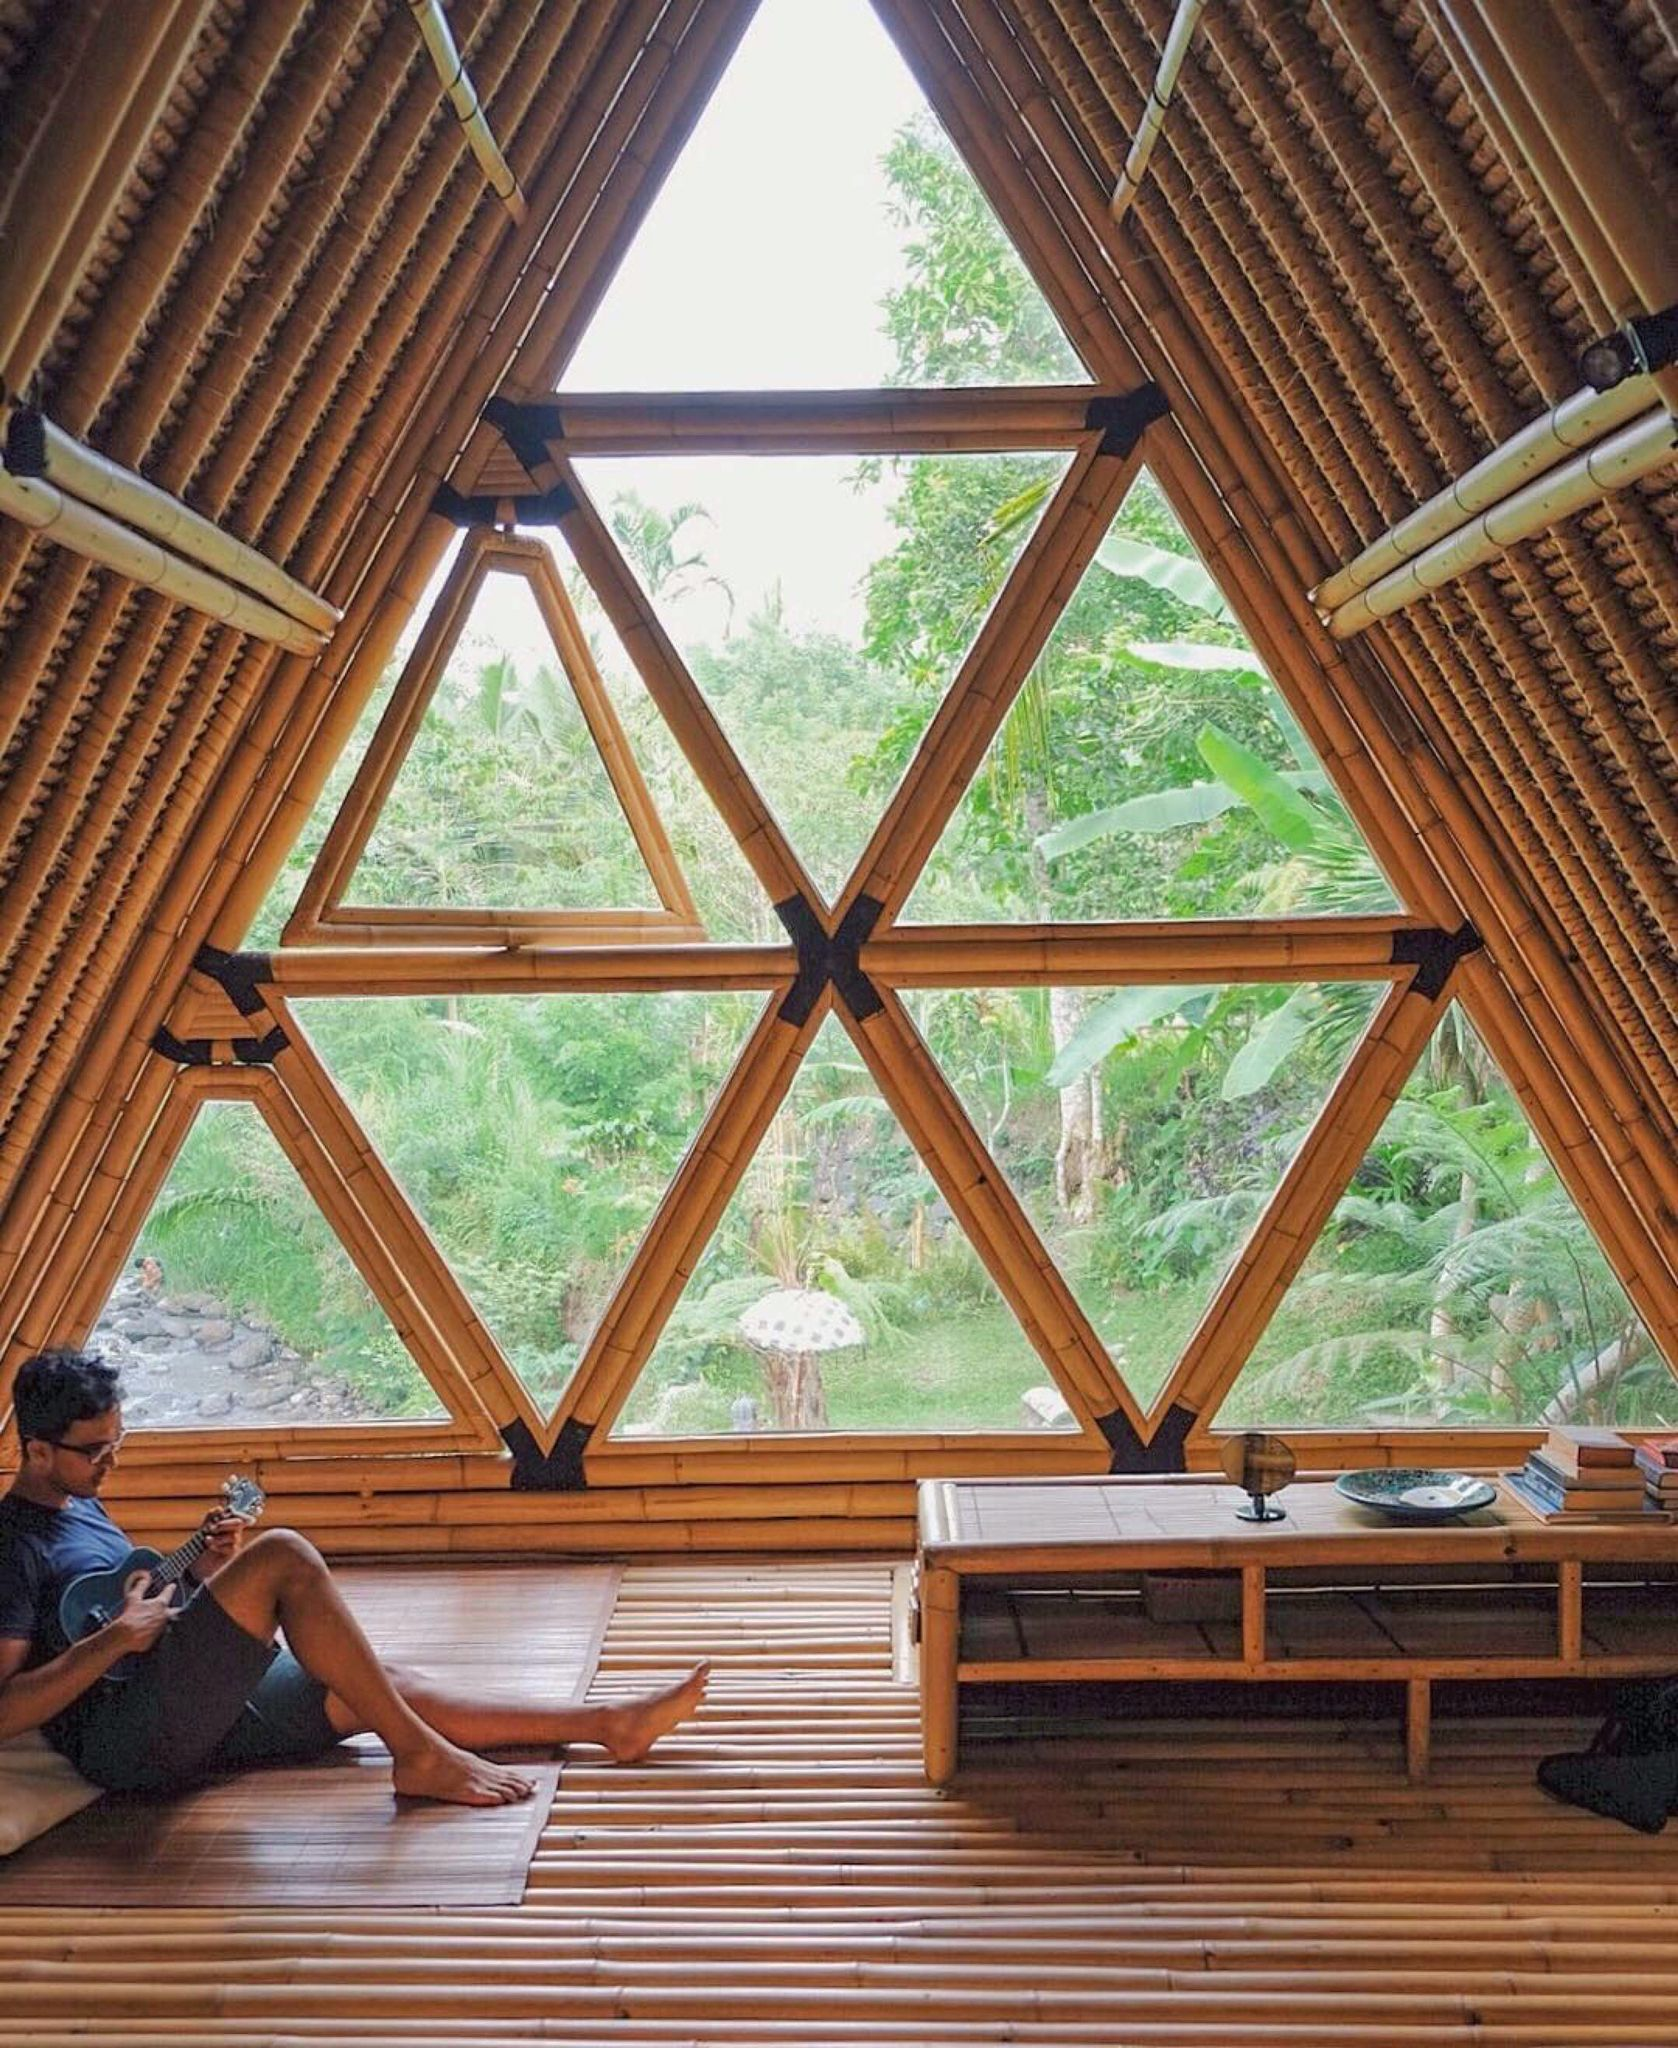 Bali Home Design: View From Inside Of Dream House Hideout, All Bamboo House